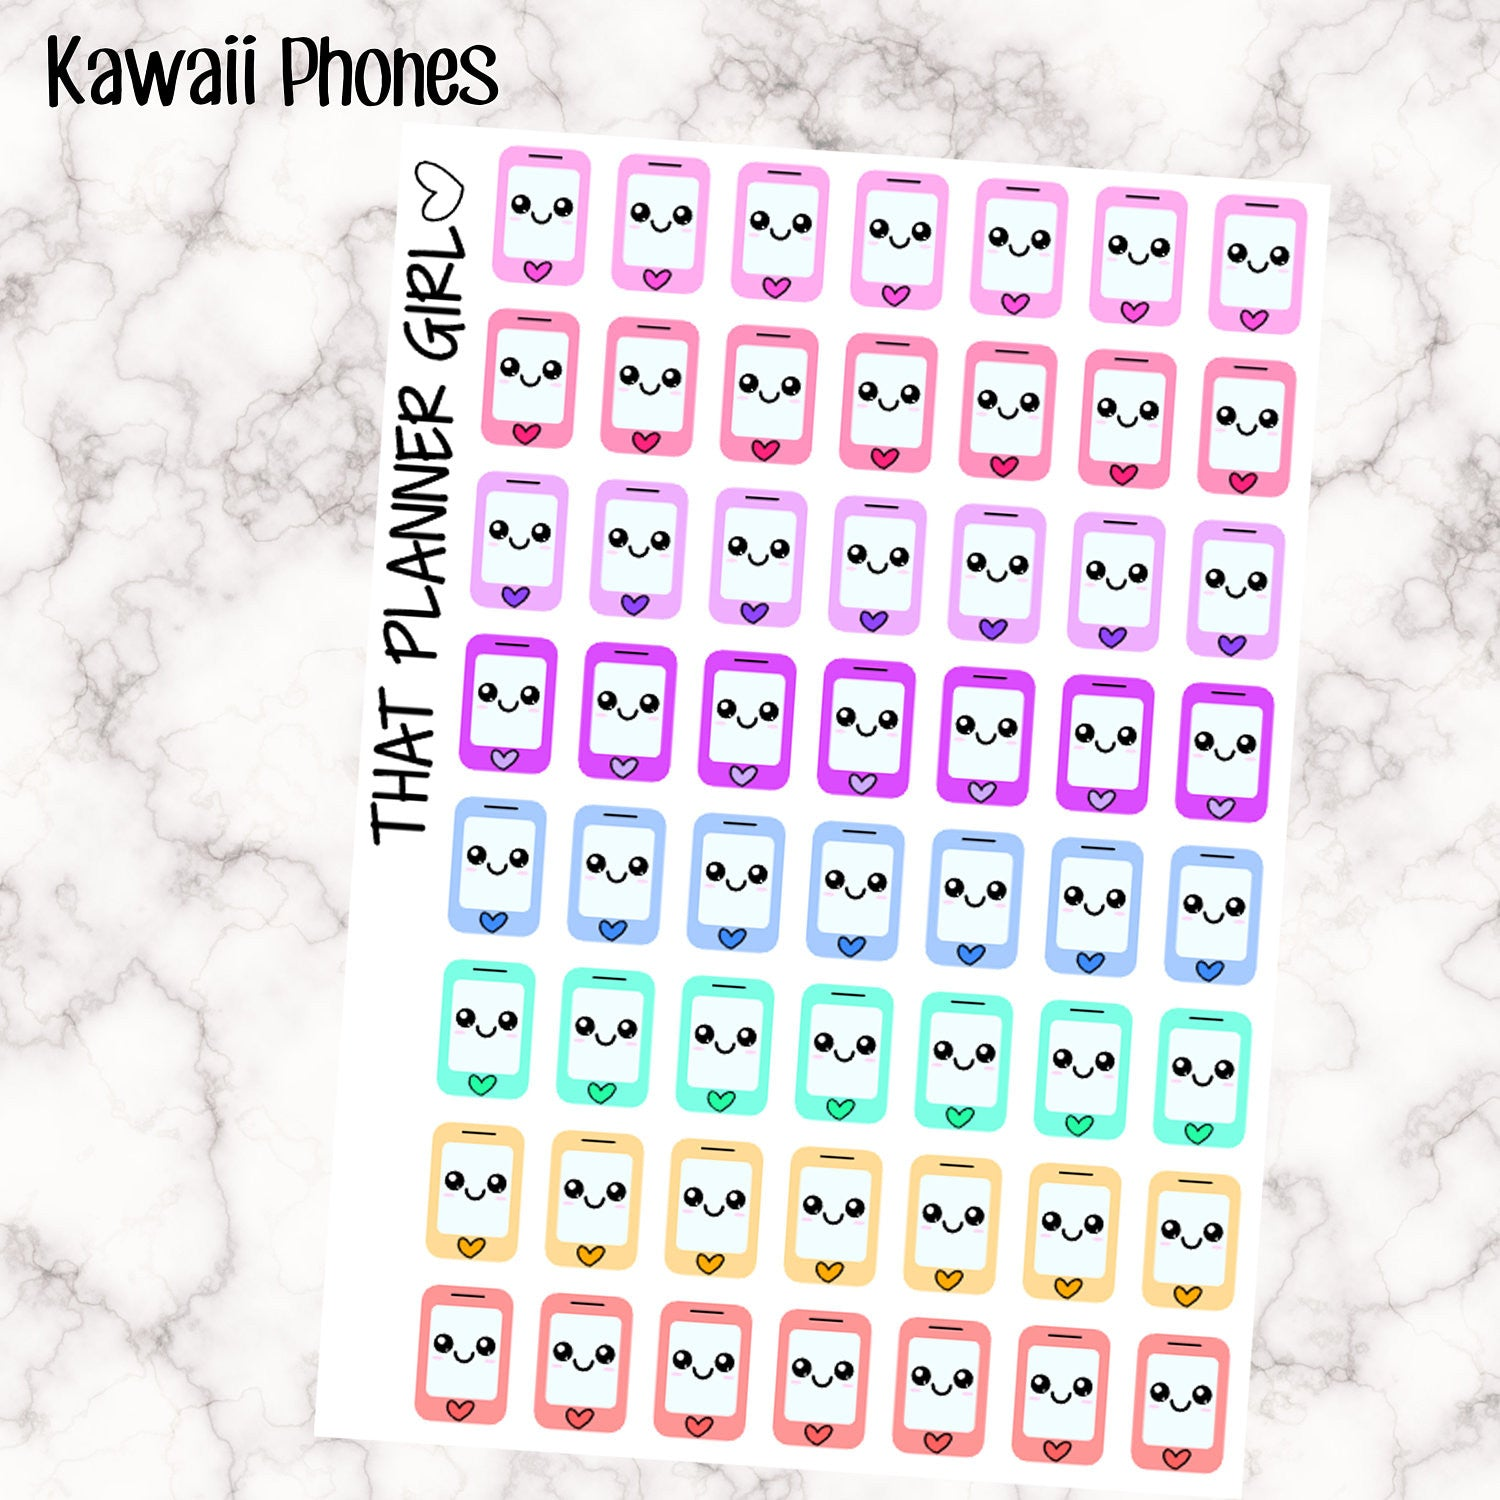 Kawaii Rainbow Mobile Phone / Telephone / Phone Call Icons - Multi Colour - Erin Condren Vertical or Horizontal Planner Stickers